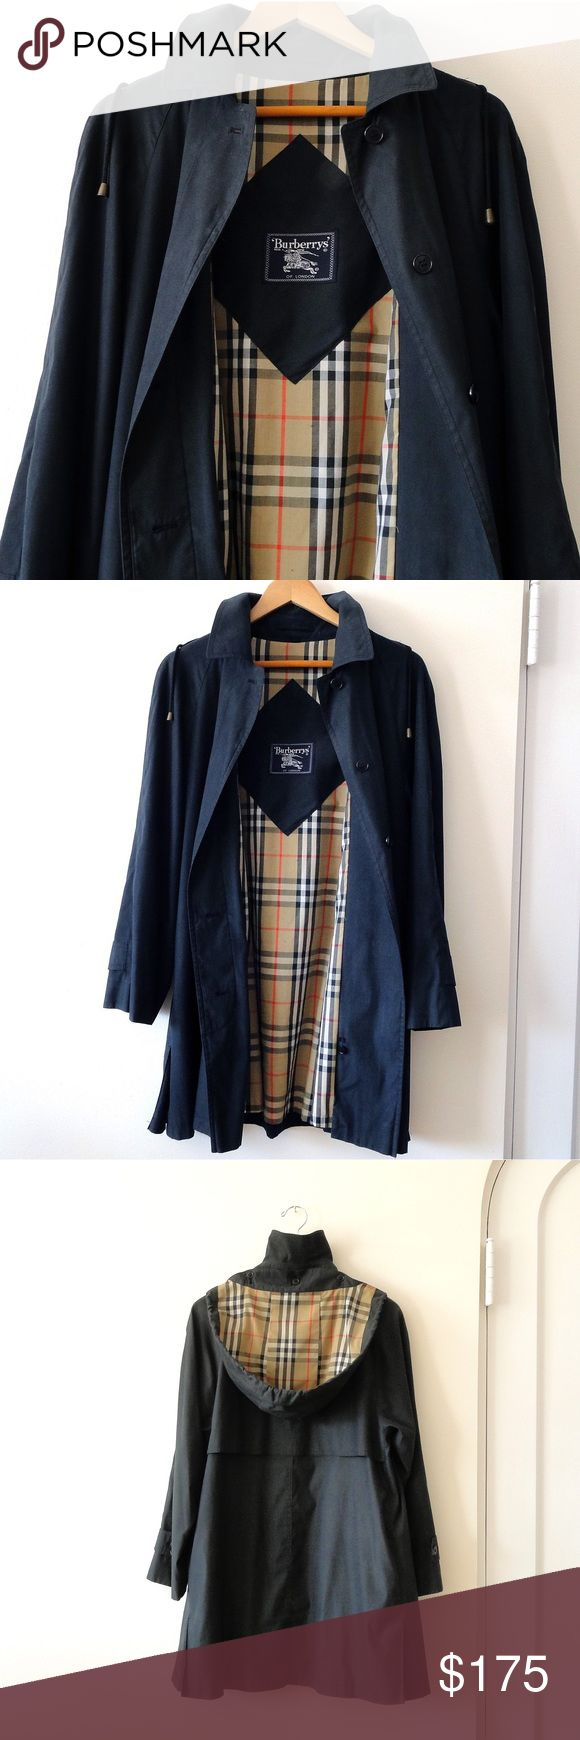 Burberry women's size 6 raincoat Burberry's of London size 6 women's rain coat. Perfect condition. A line, black, classic Burberry lining. Removable hood attached with buttons. While not waterproof, this is a rain jacket. Burberry Jackets & Coats Trench Coats